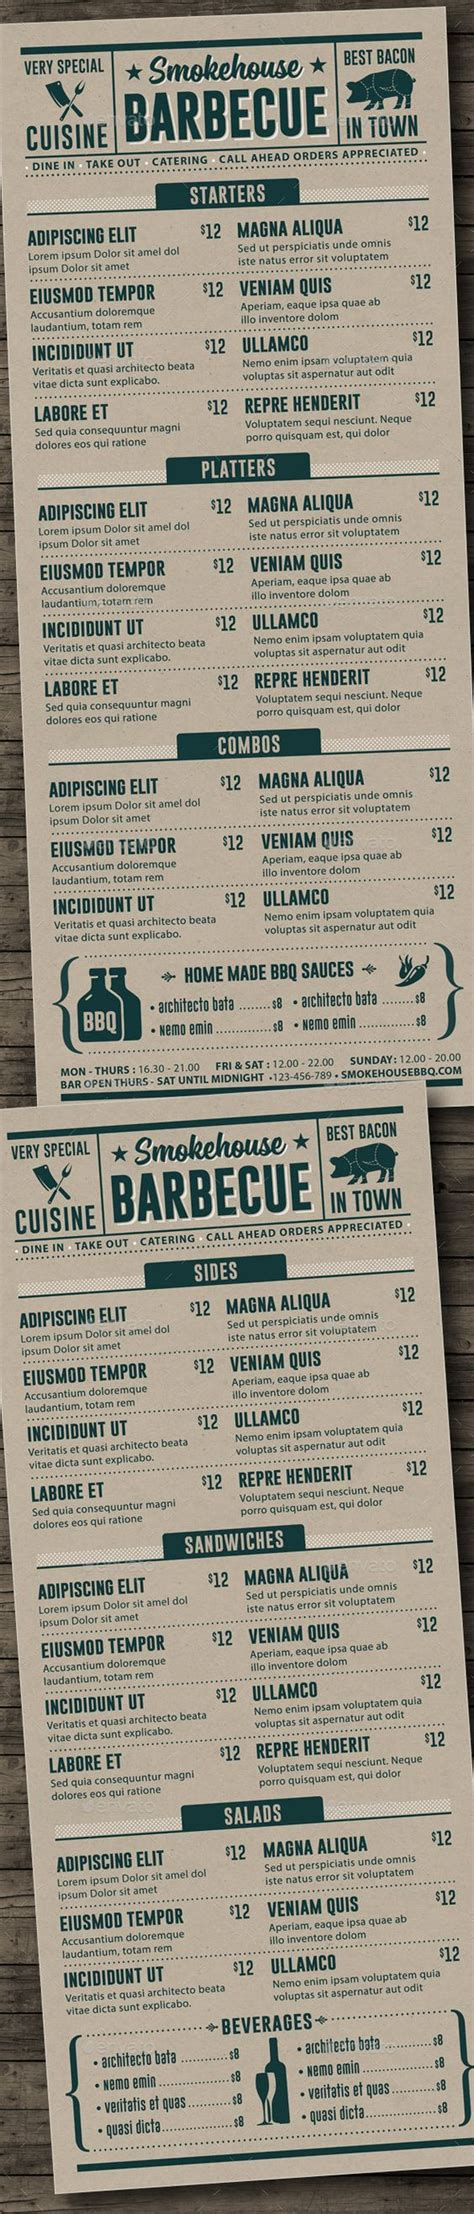 bbq menu template bbq menu template menu template food menu and bbq menu